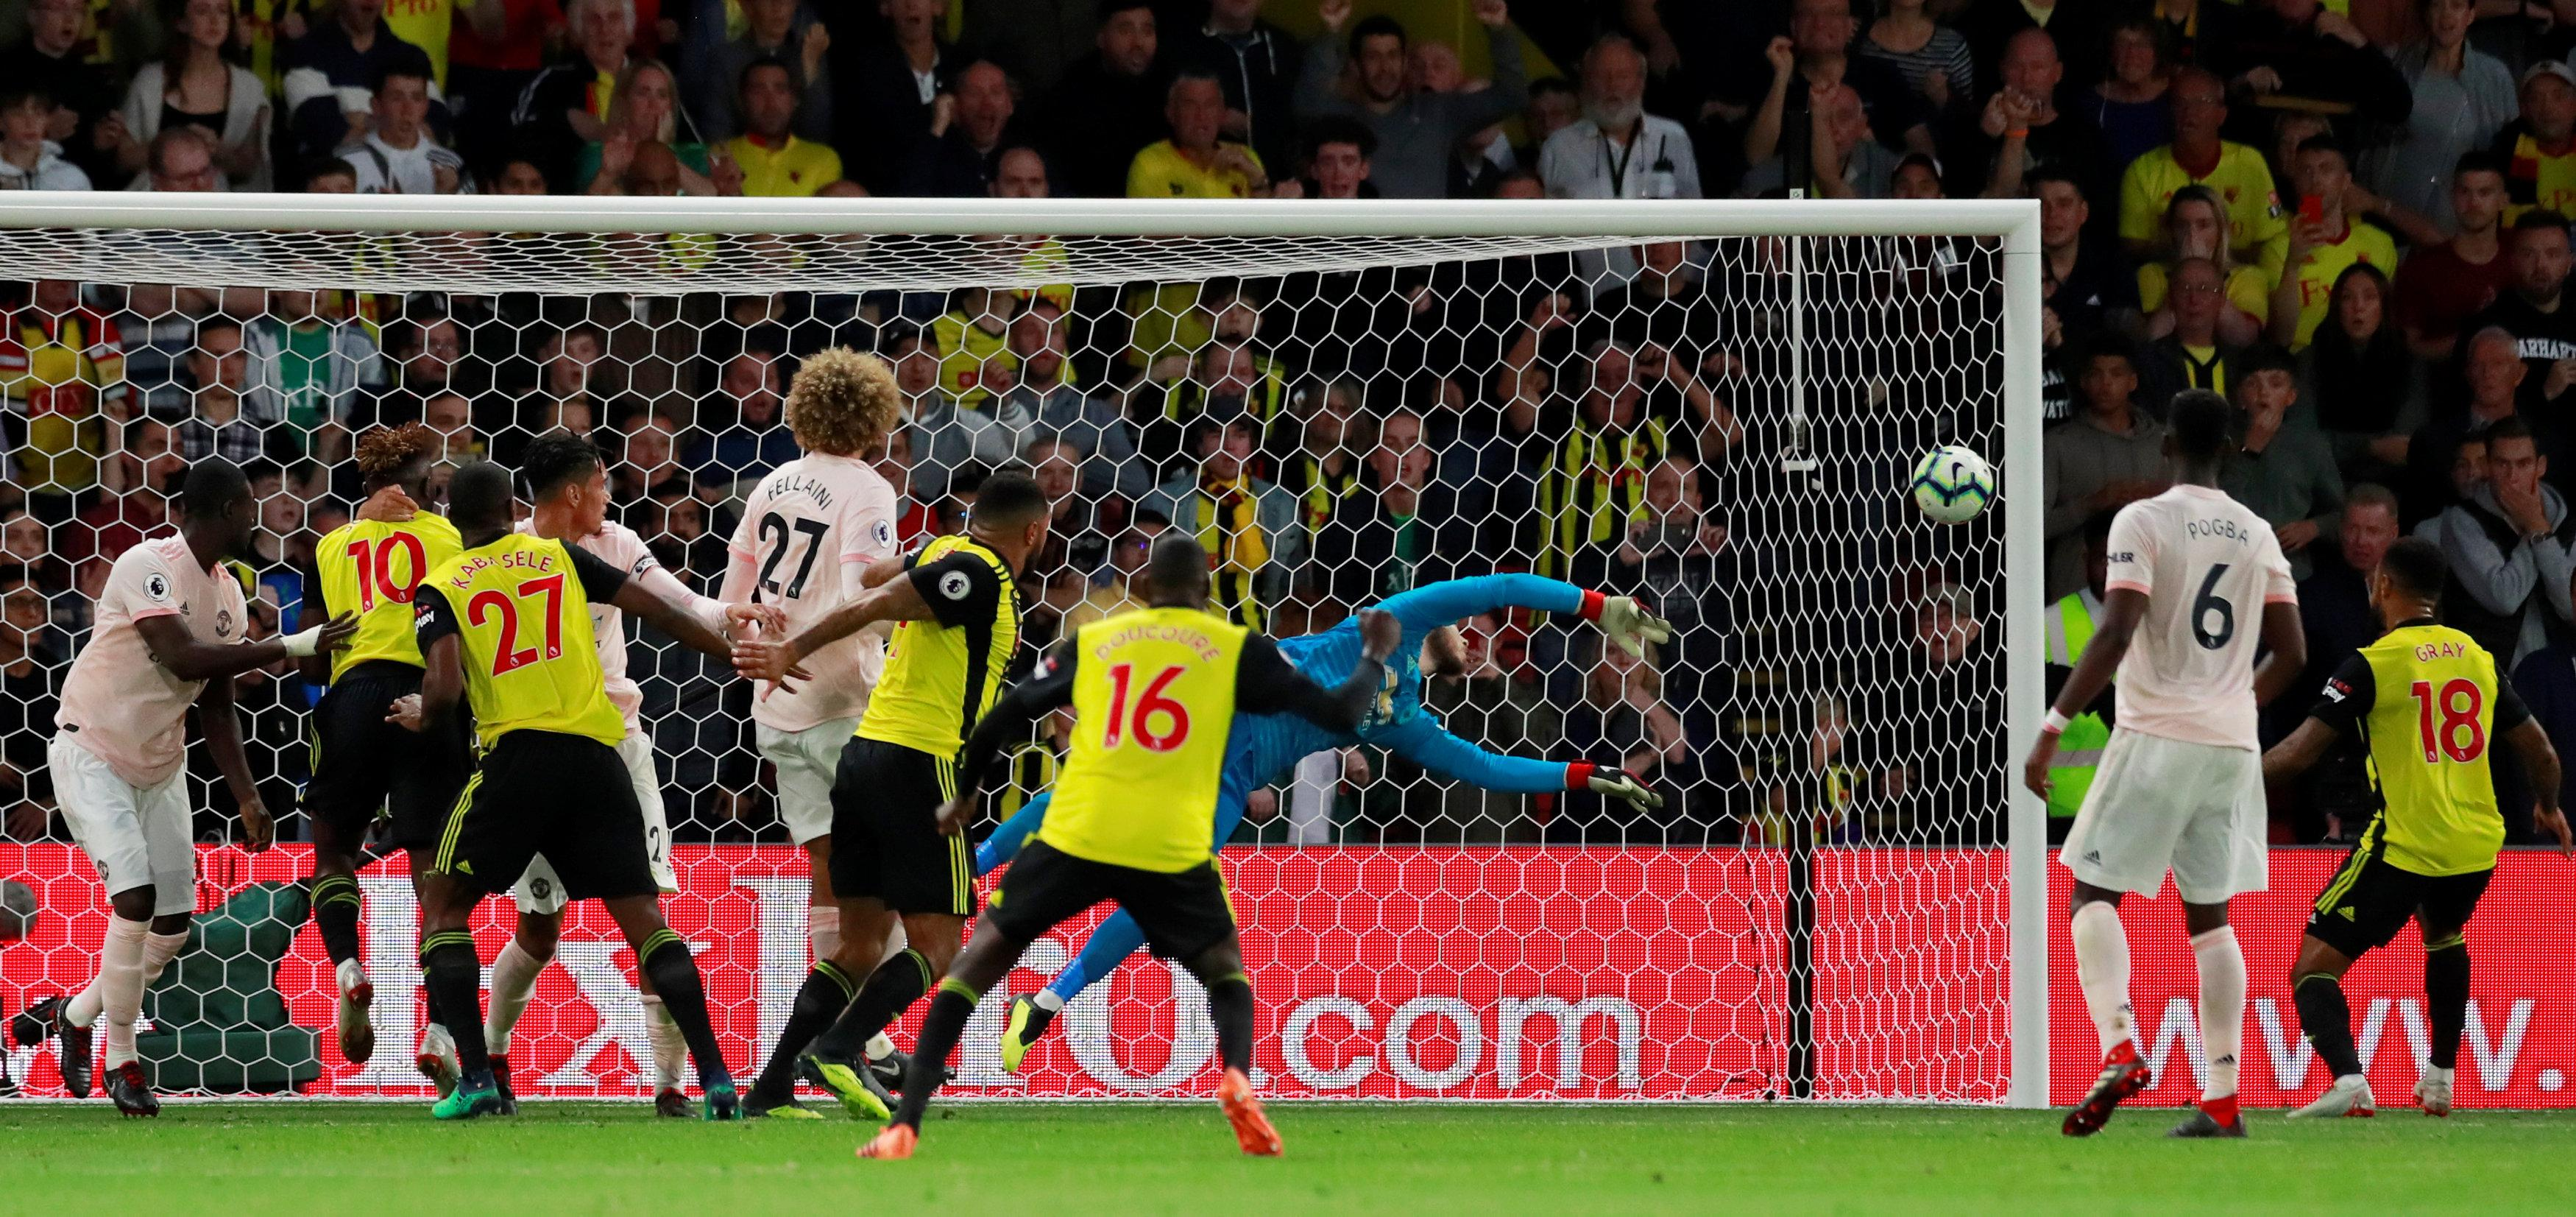 After a poor World Cup and shaky start to the season, De Gea is getting back to his best - with impressive performances against Wolves and Watford